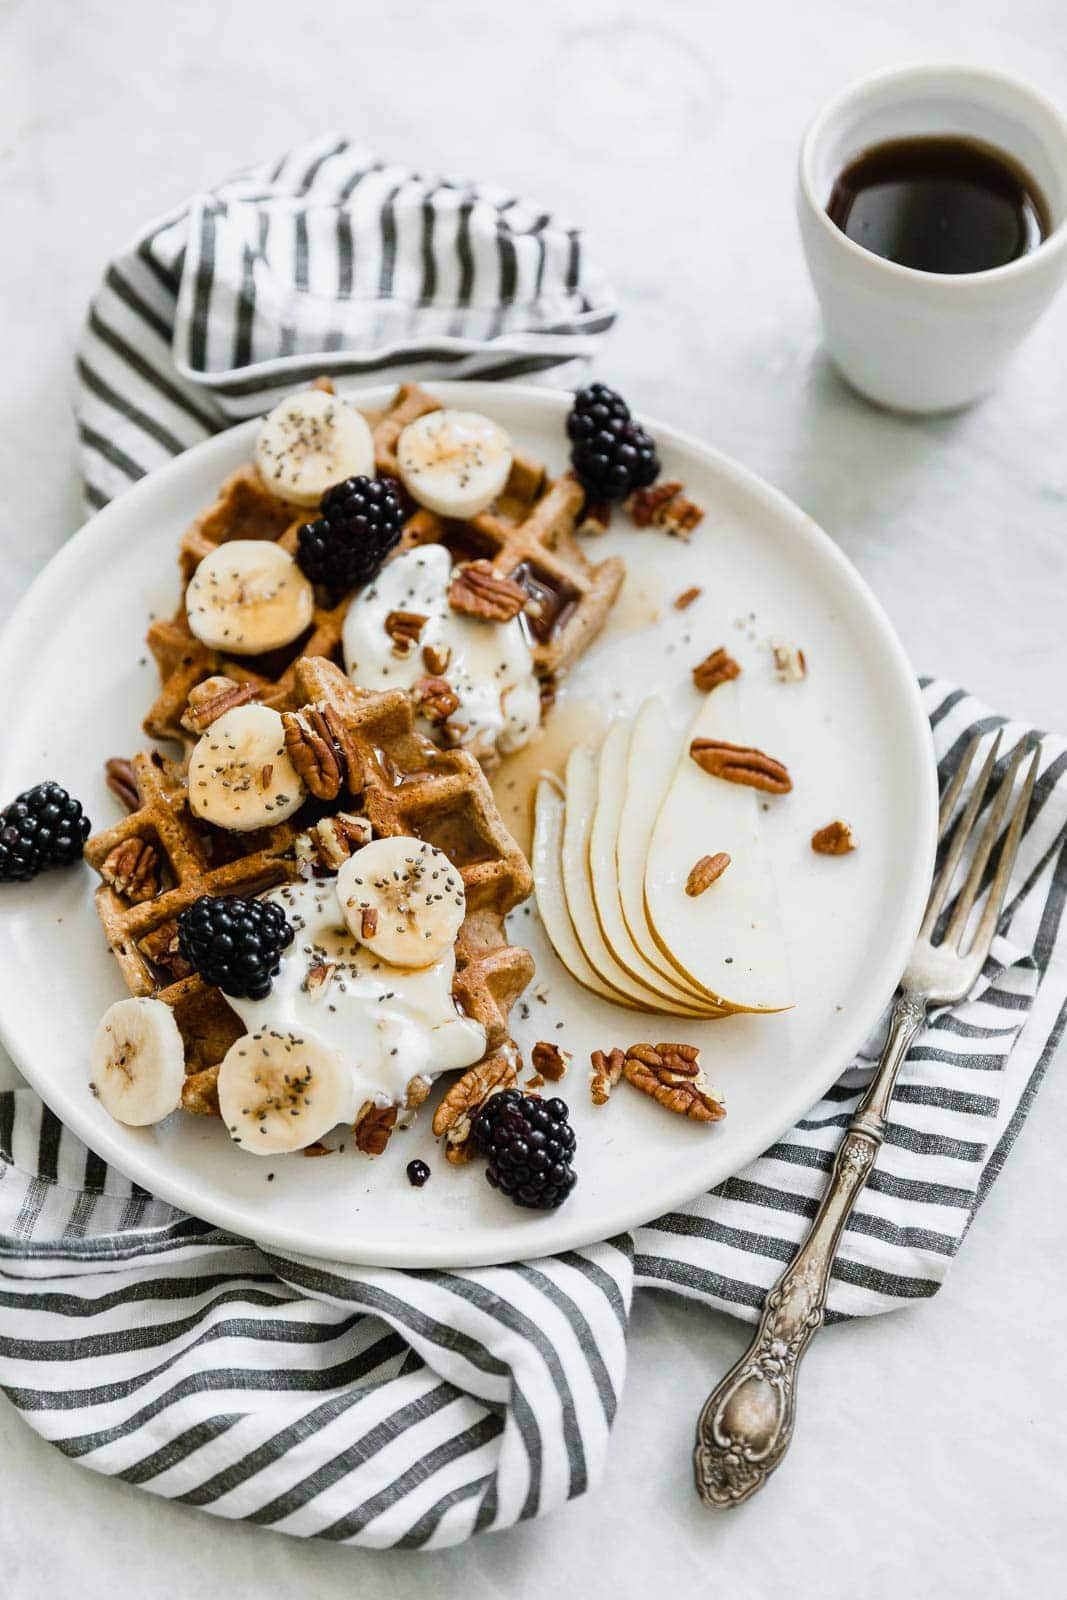 pumpkin spice waffles with fruit, nuts, and yogurt